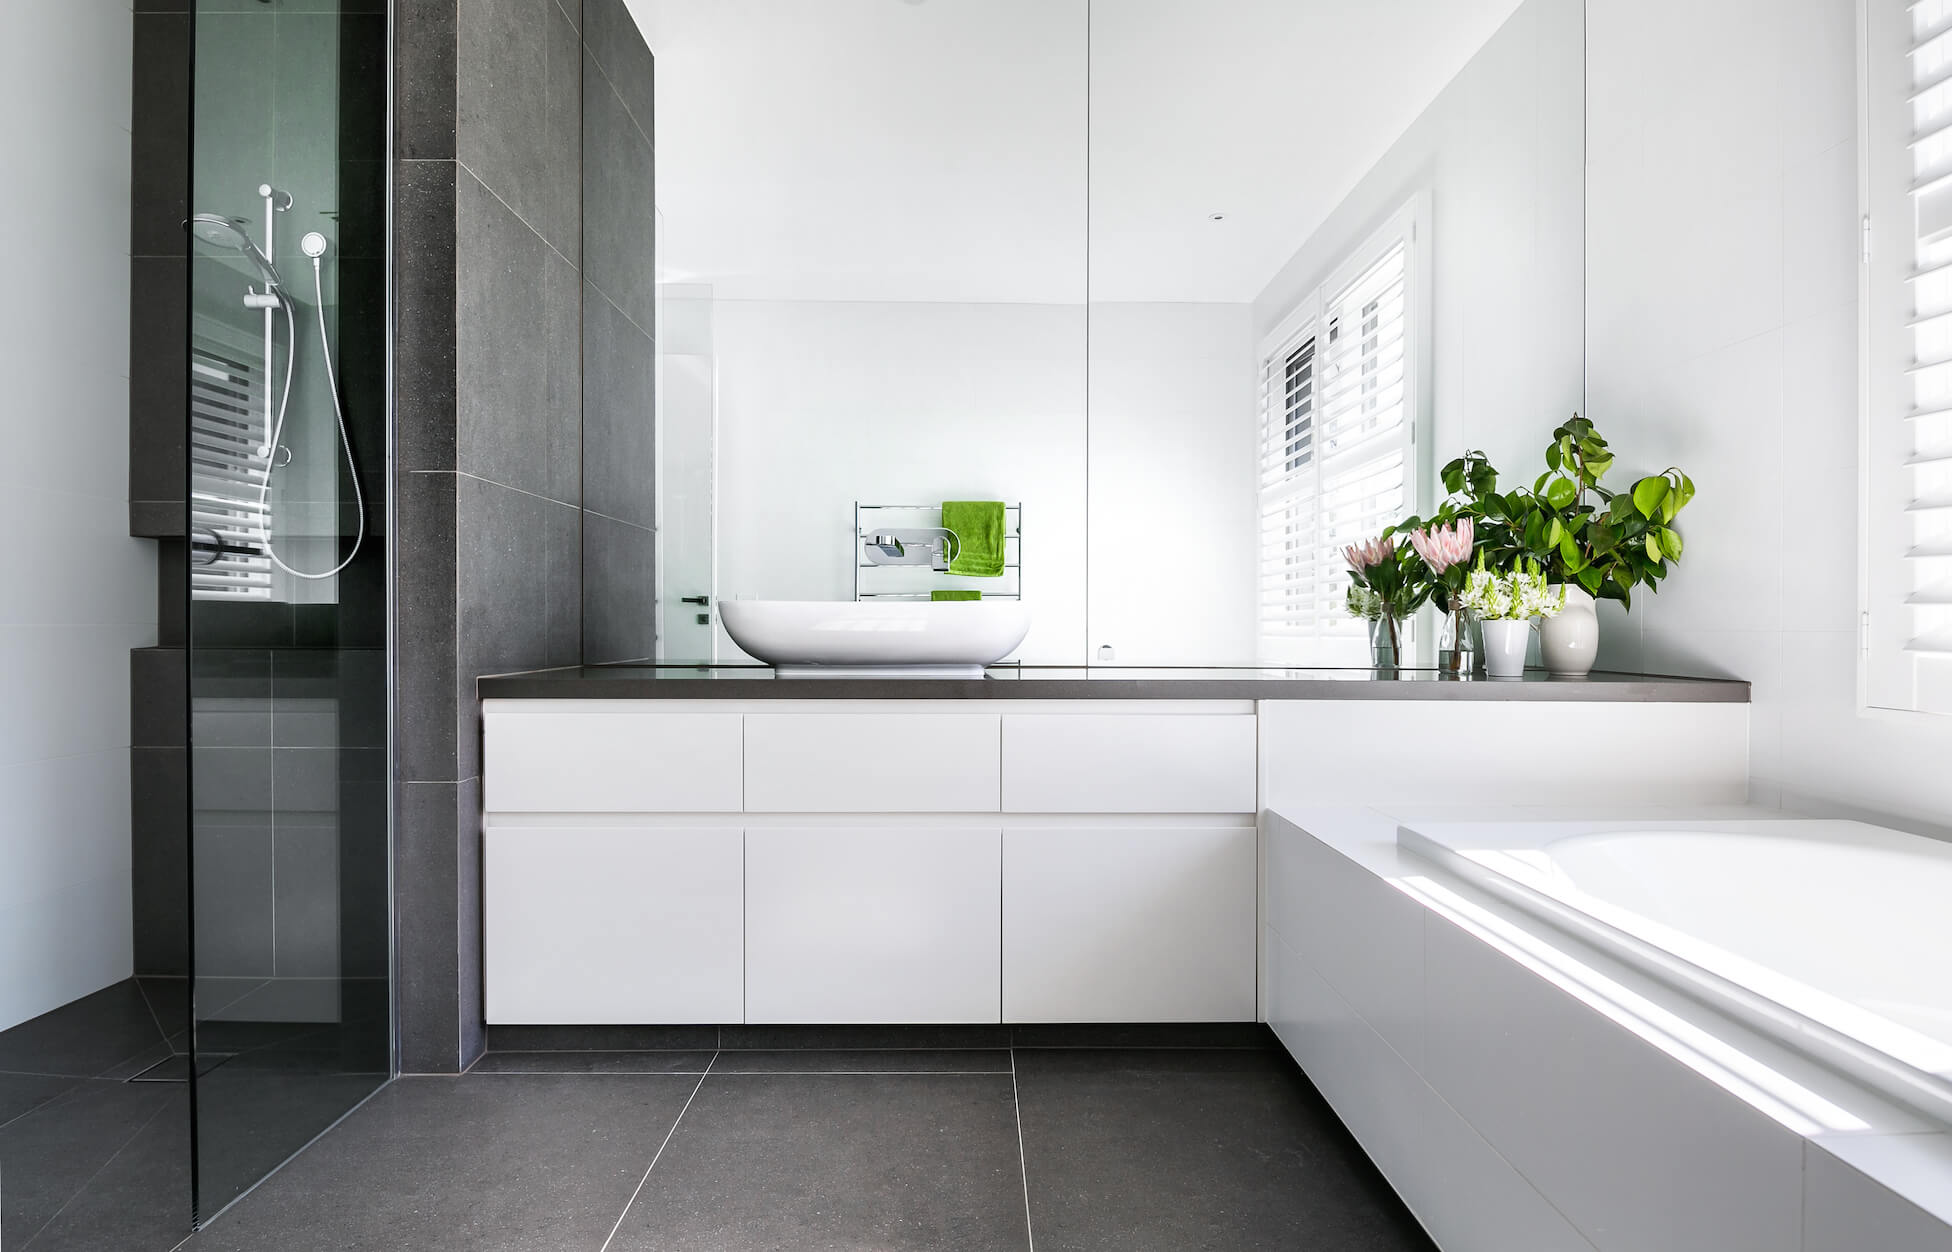 This secondary bathroom features another vessel sink, standing here between a large window seat soaking tub and glass enclosed walk-in shower.